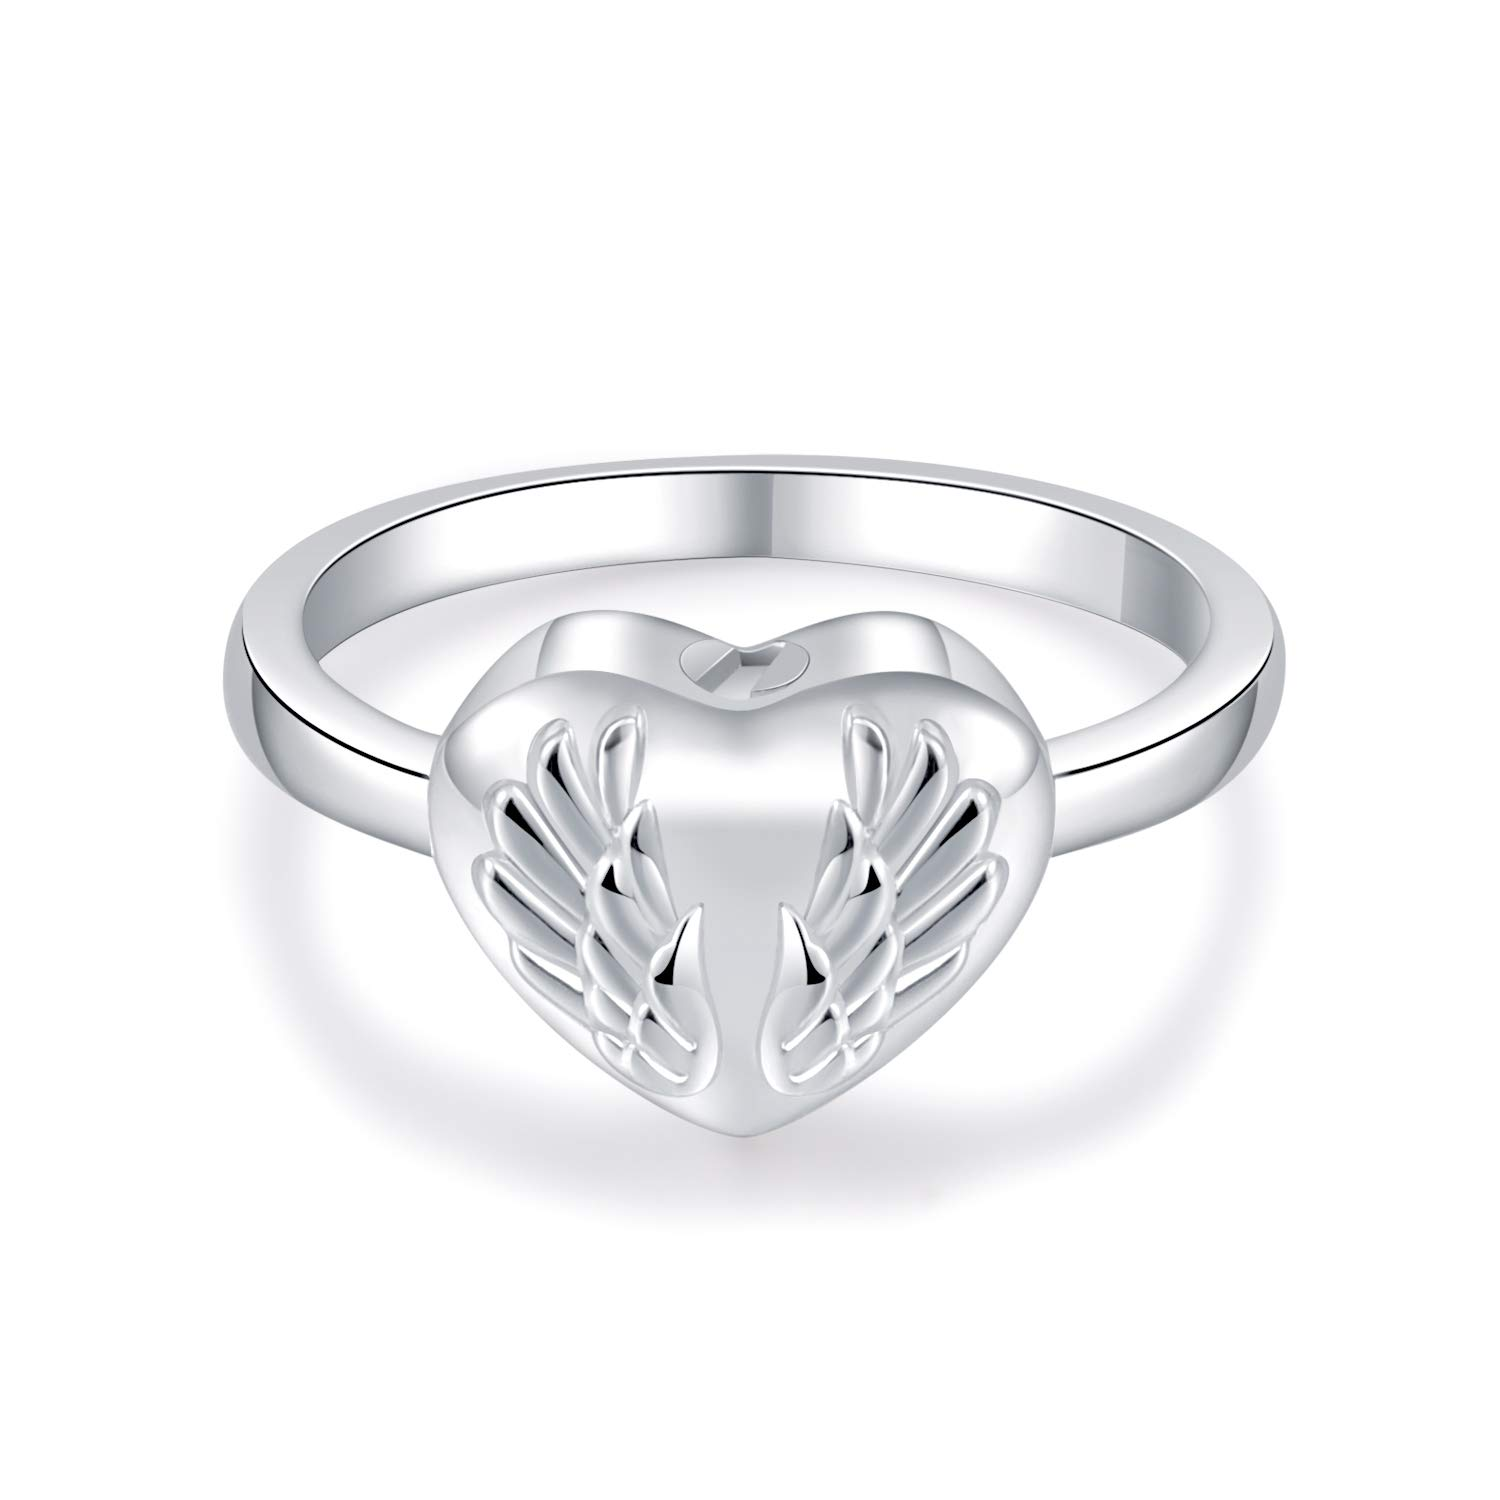 Silver Urn Ring Pet Urn Heart Urn Ring Pet Memorial for Cat or Dog Size 7 8 9 10 Cremation Memorial Jewelry Memorial Jewelry